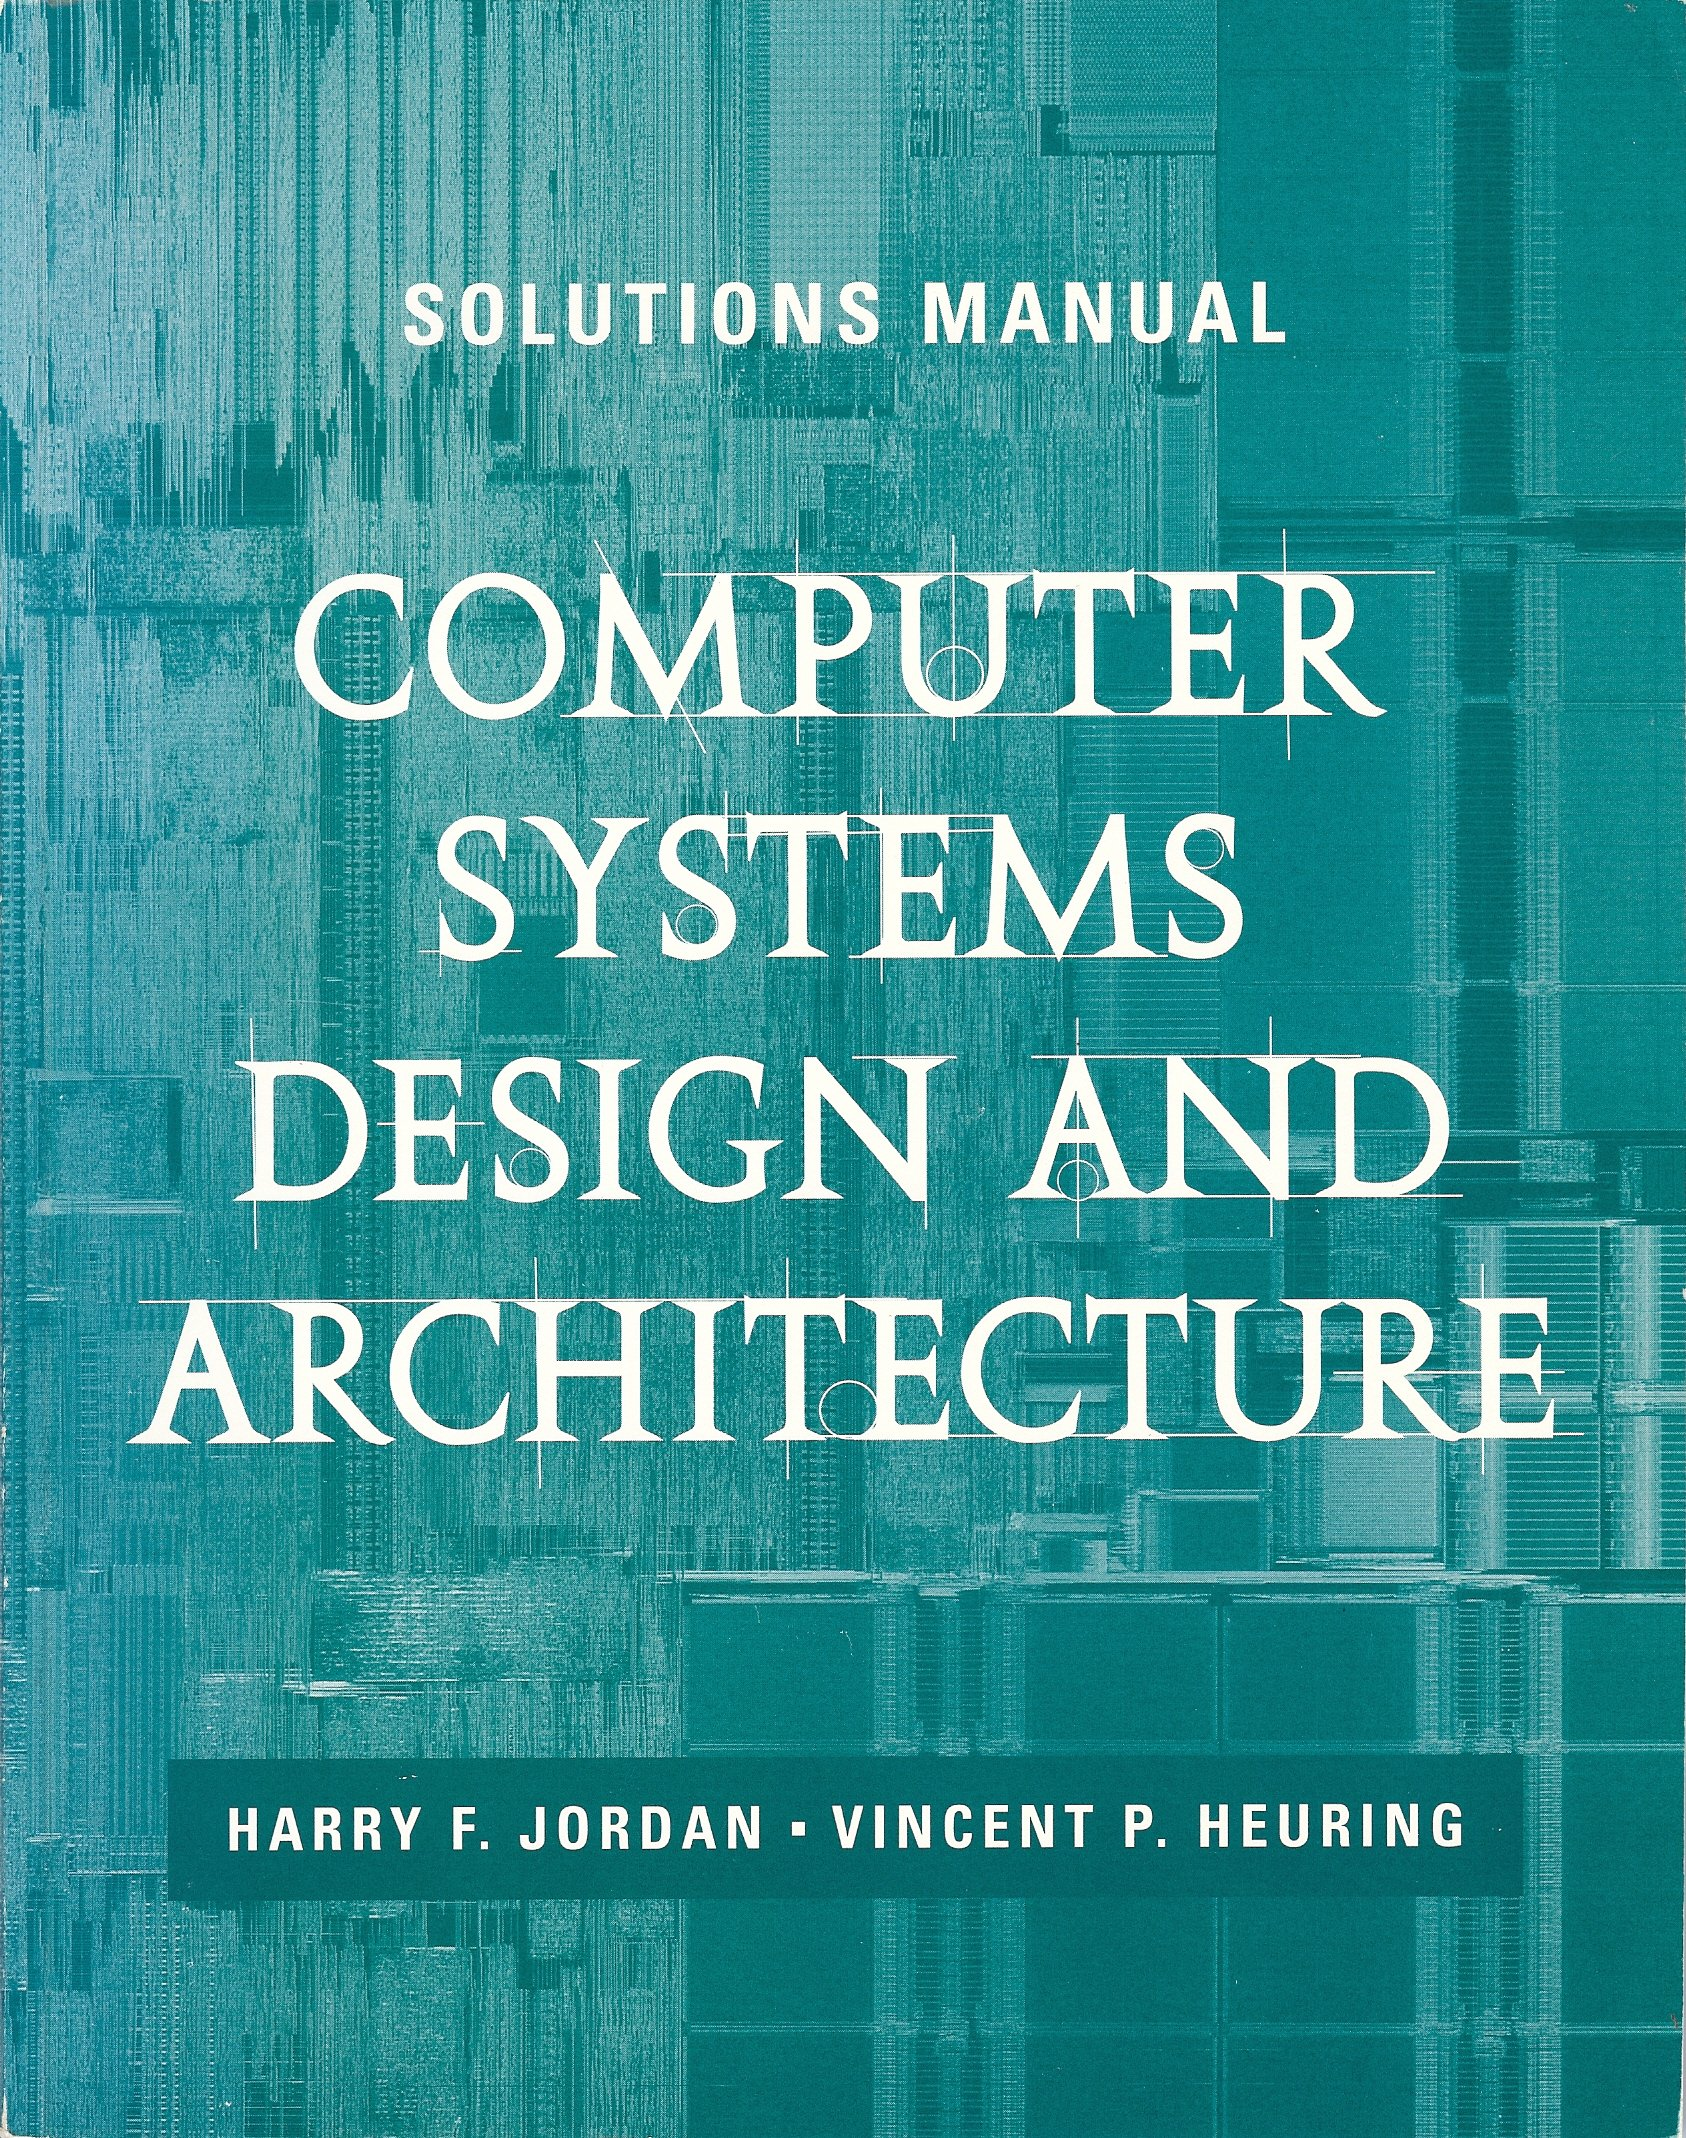 Computer systems design and architecture solutions manual cad amazon co uk vincent p heuring harry f jordan 9780201895803 books